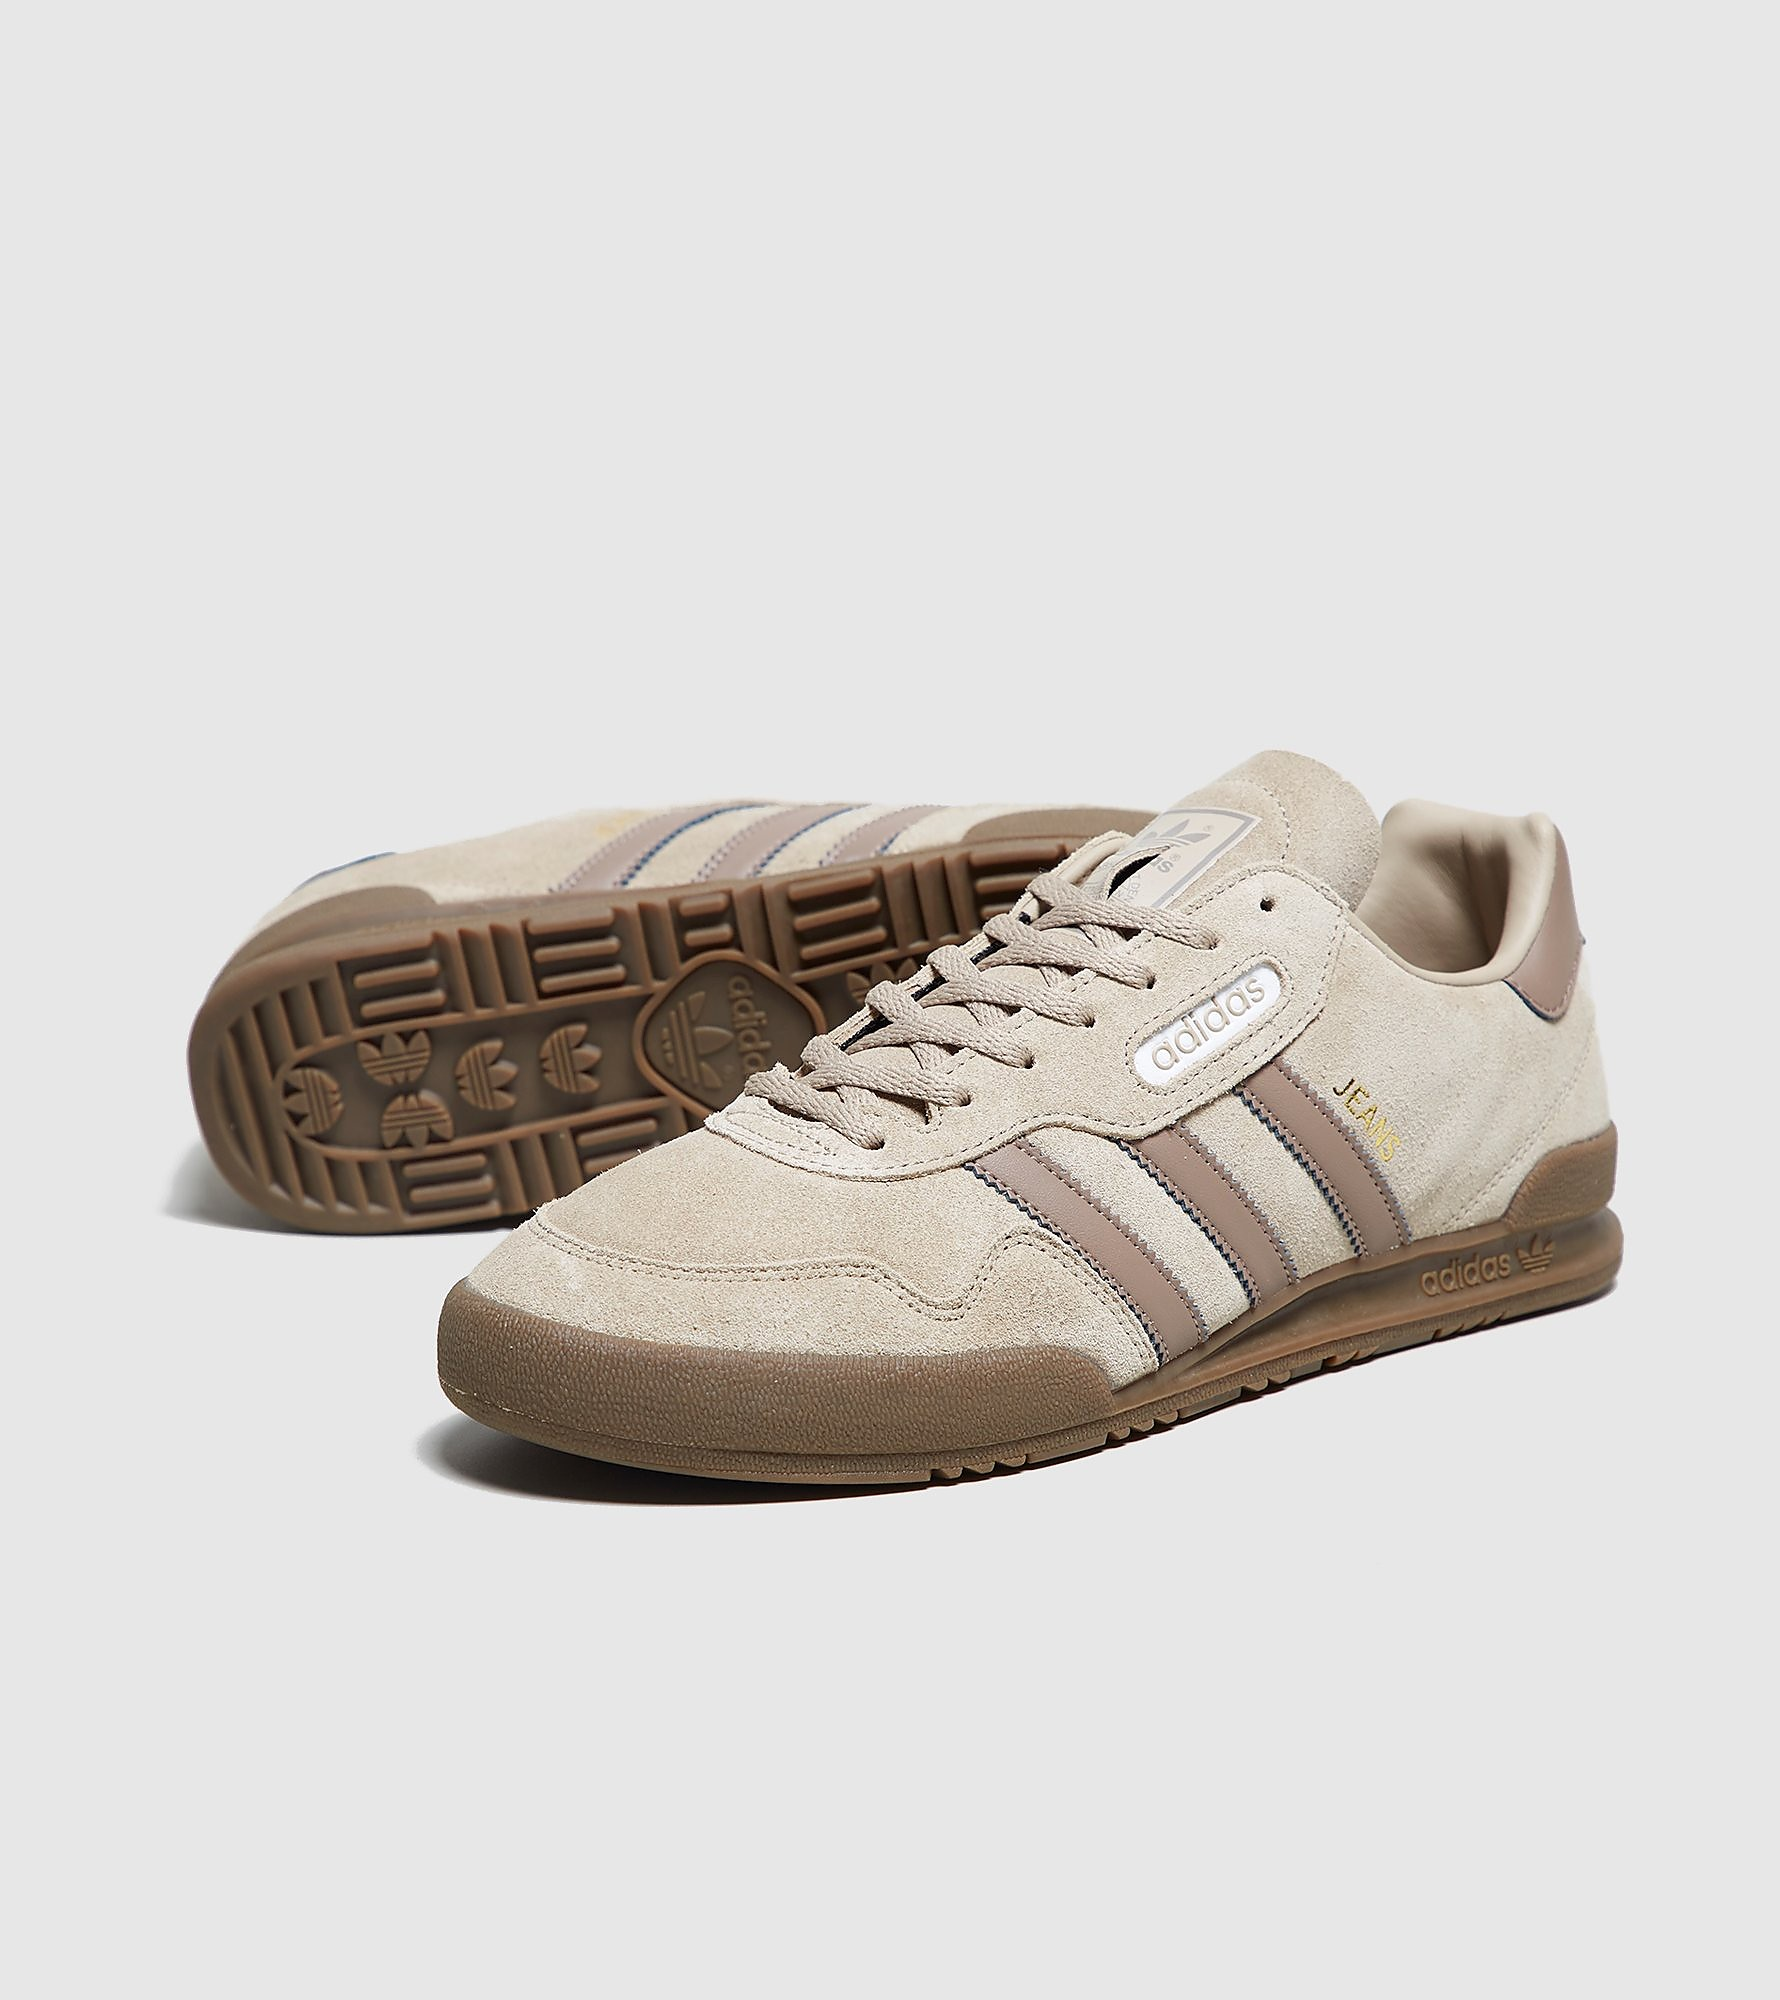 adidas Originals Archive Jeans Super - Exclusivité size?